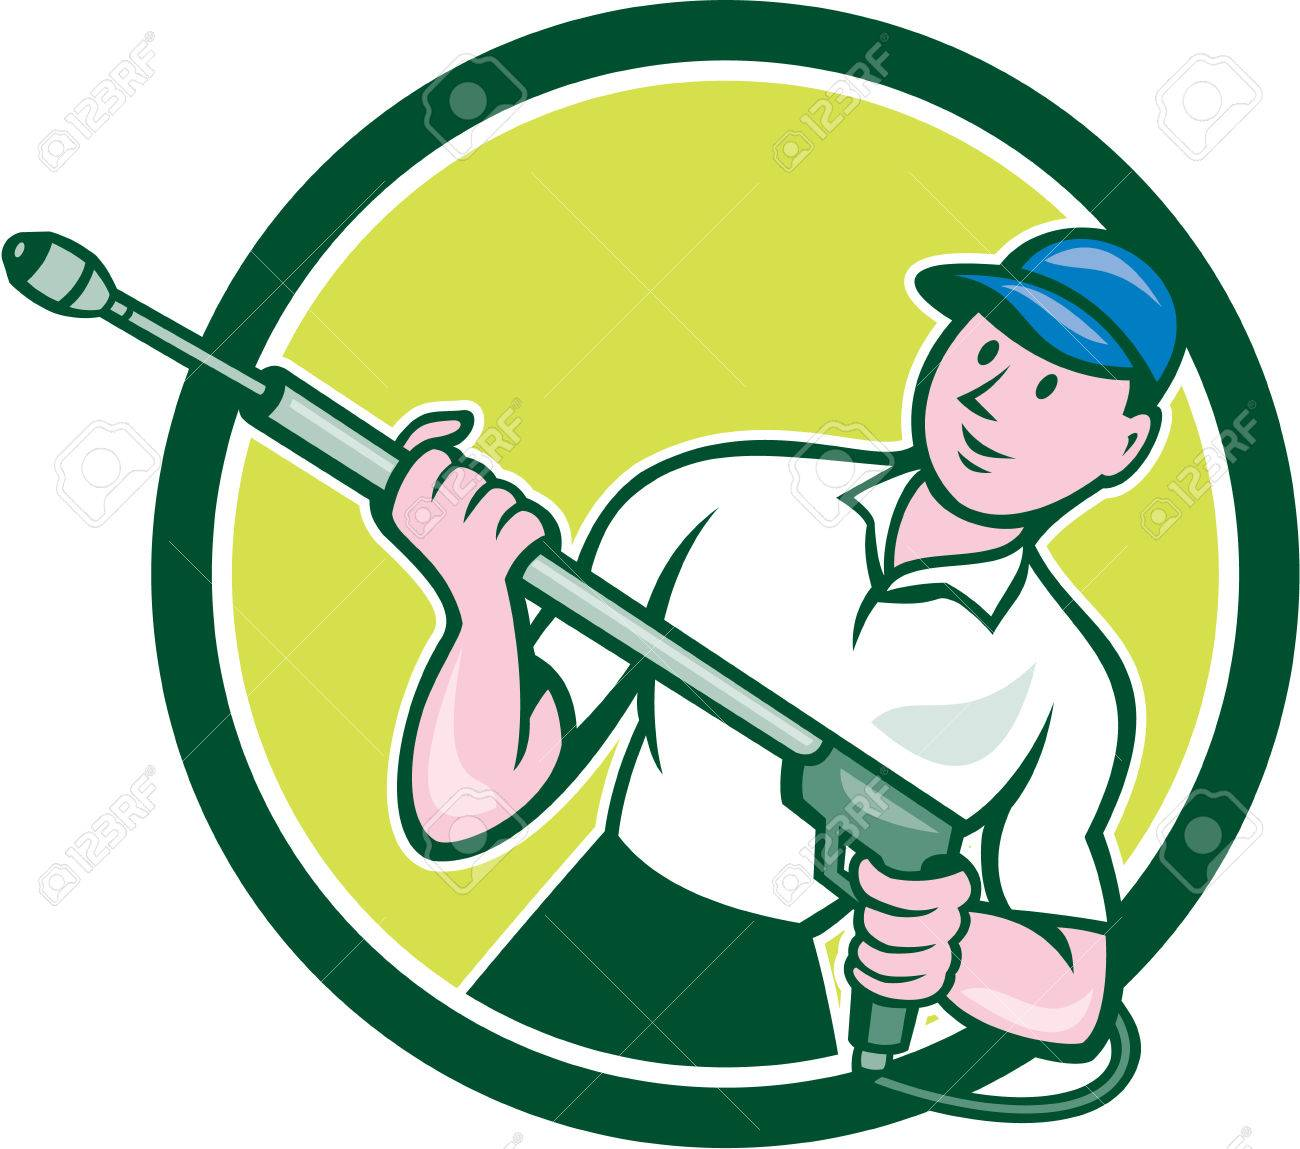 Illustration of a male pressure washing cleaner worker holding a water blaster viewed from front set inside circle shape on isolated background done in cartoon style. Stock Vector - 34617337